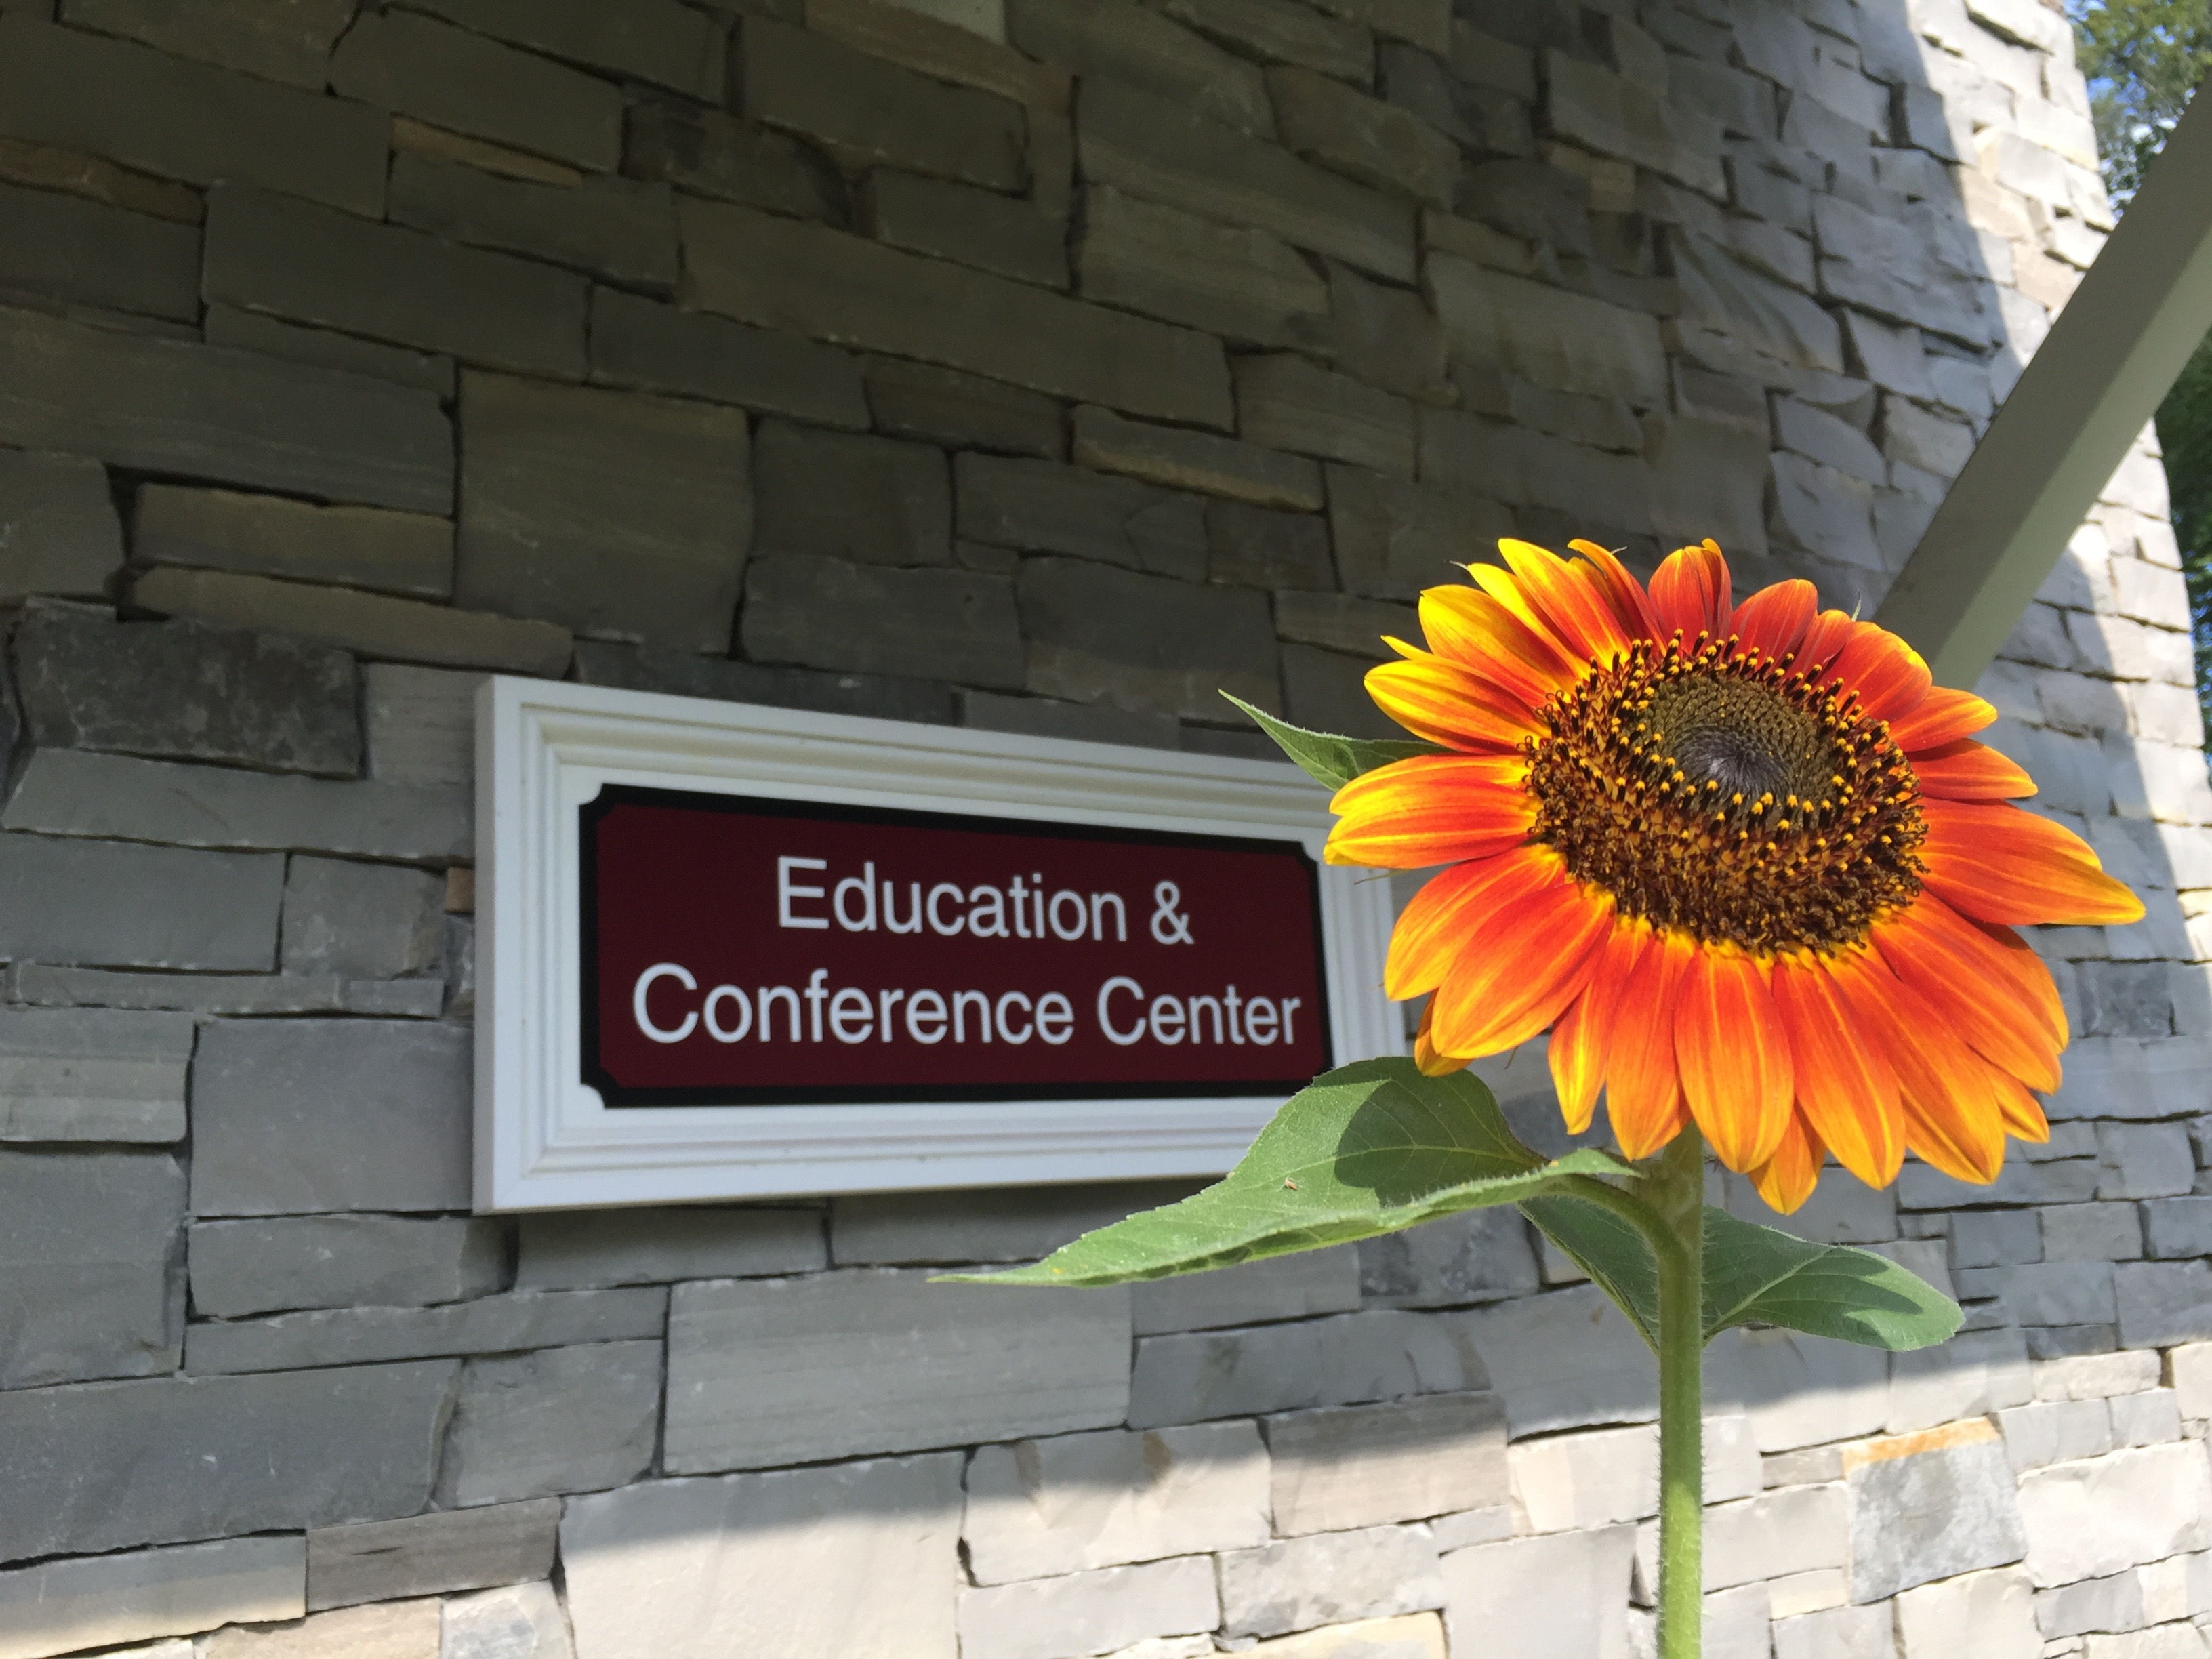 Education and Conference Center